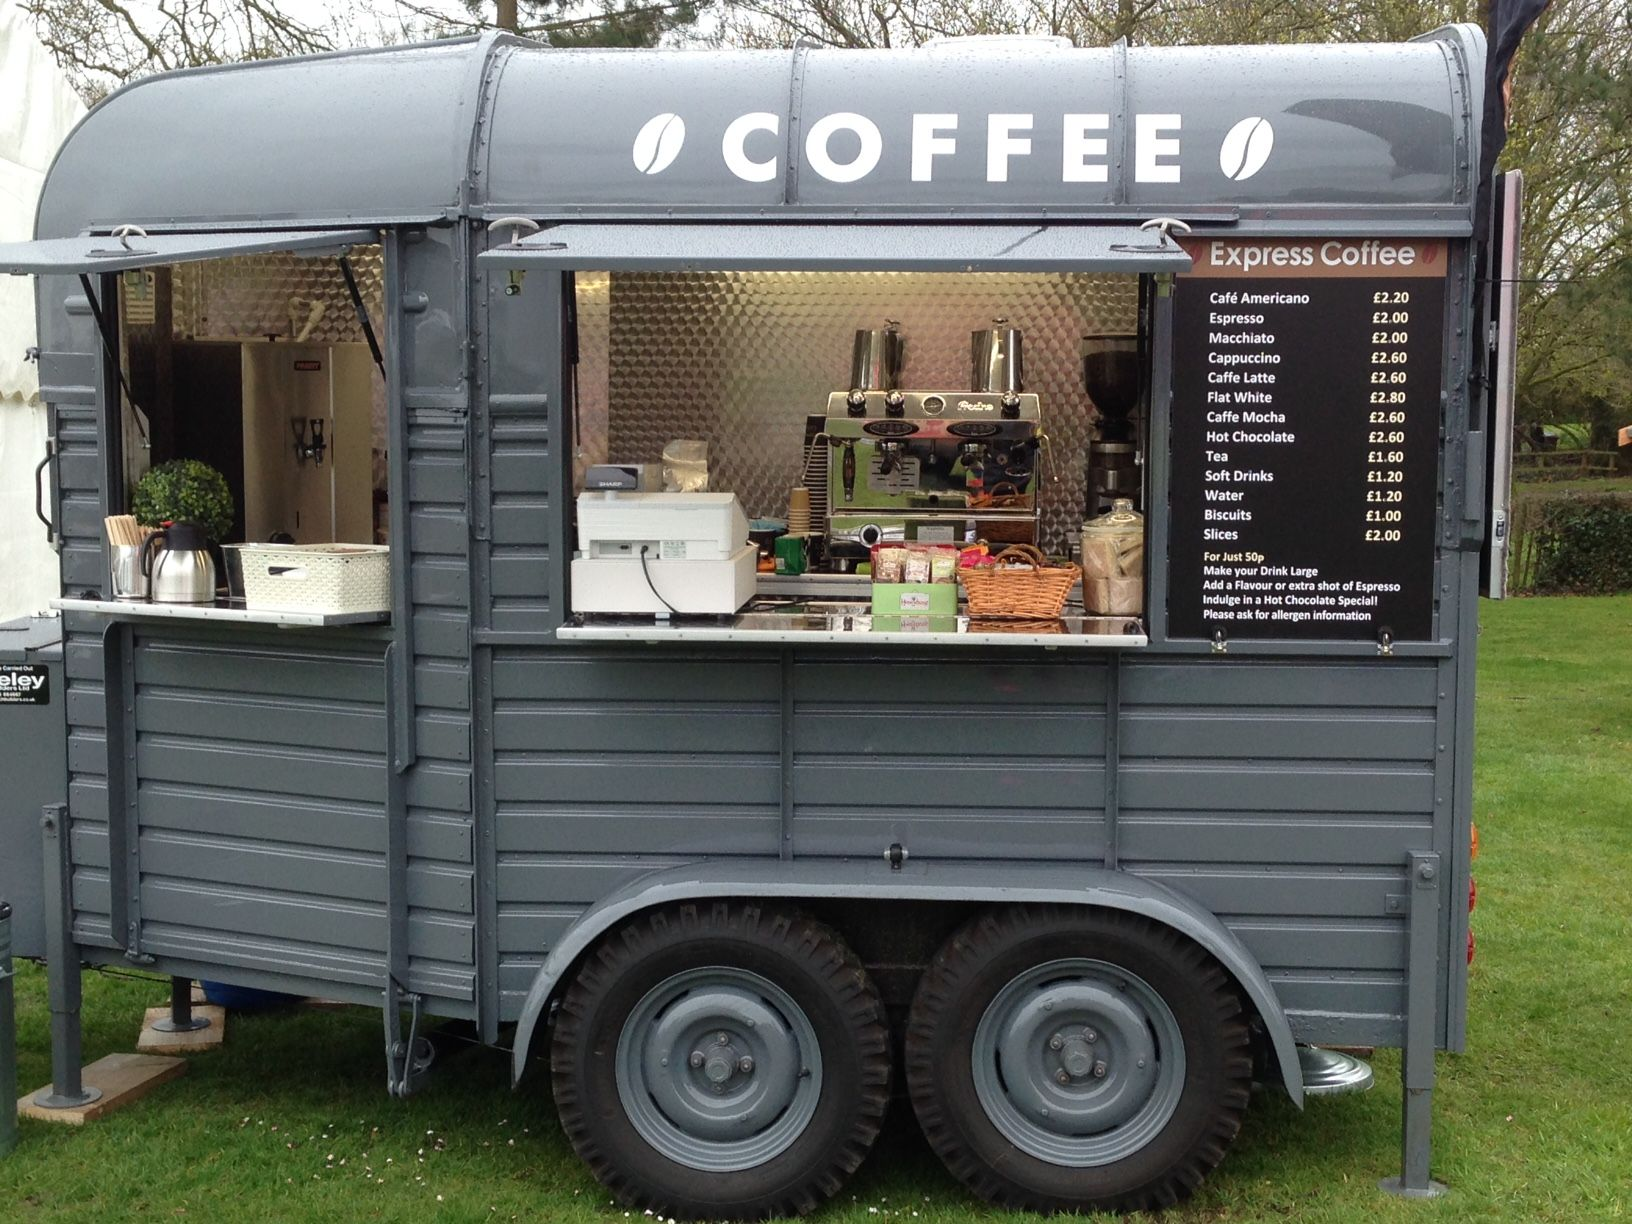 Alchemy Coffee Food Truck Express Coffee Cars Ltd Food Trucks Coffee Food Truck